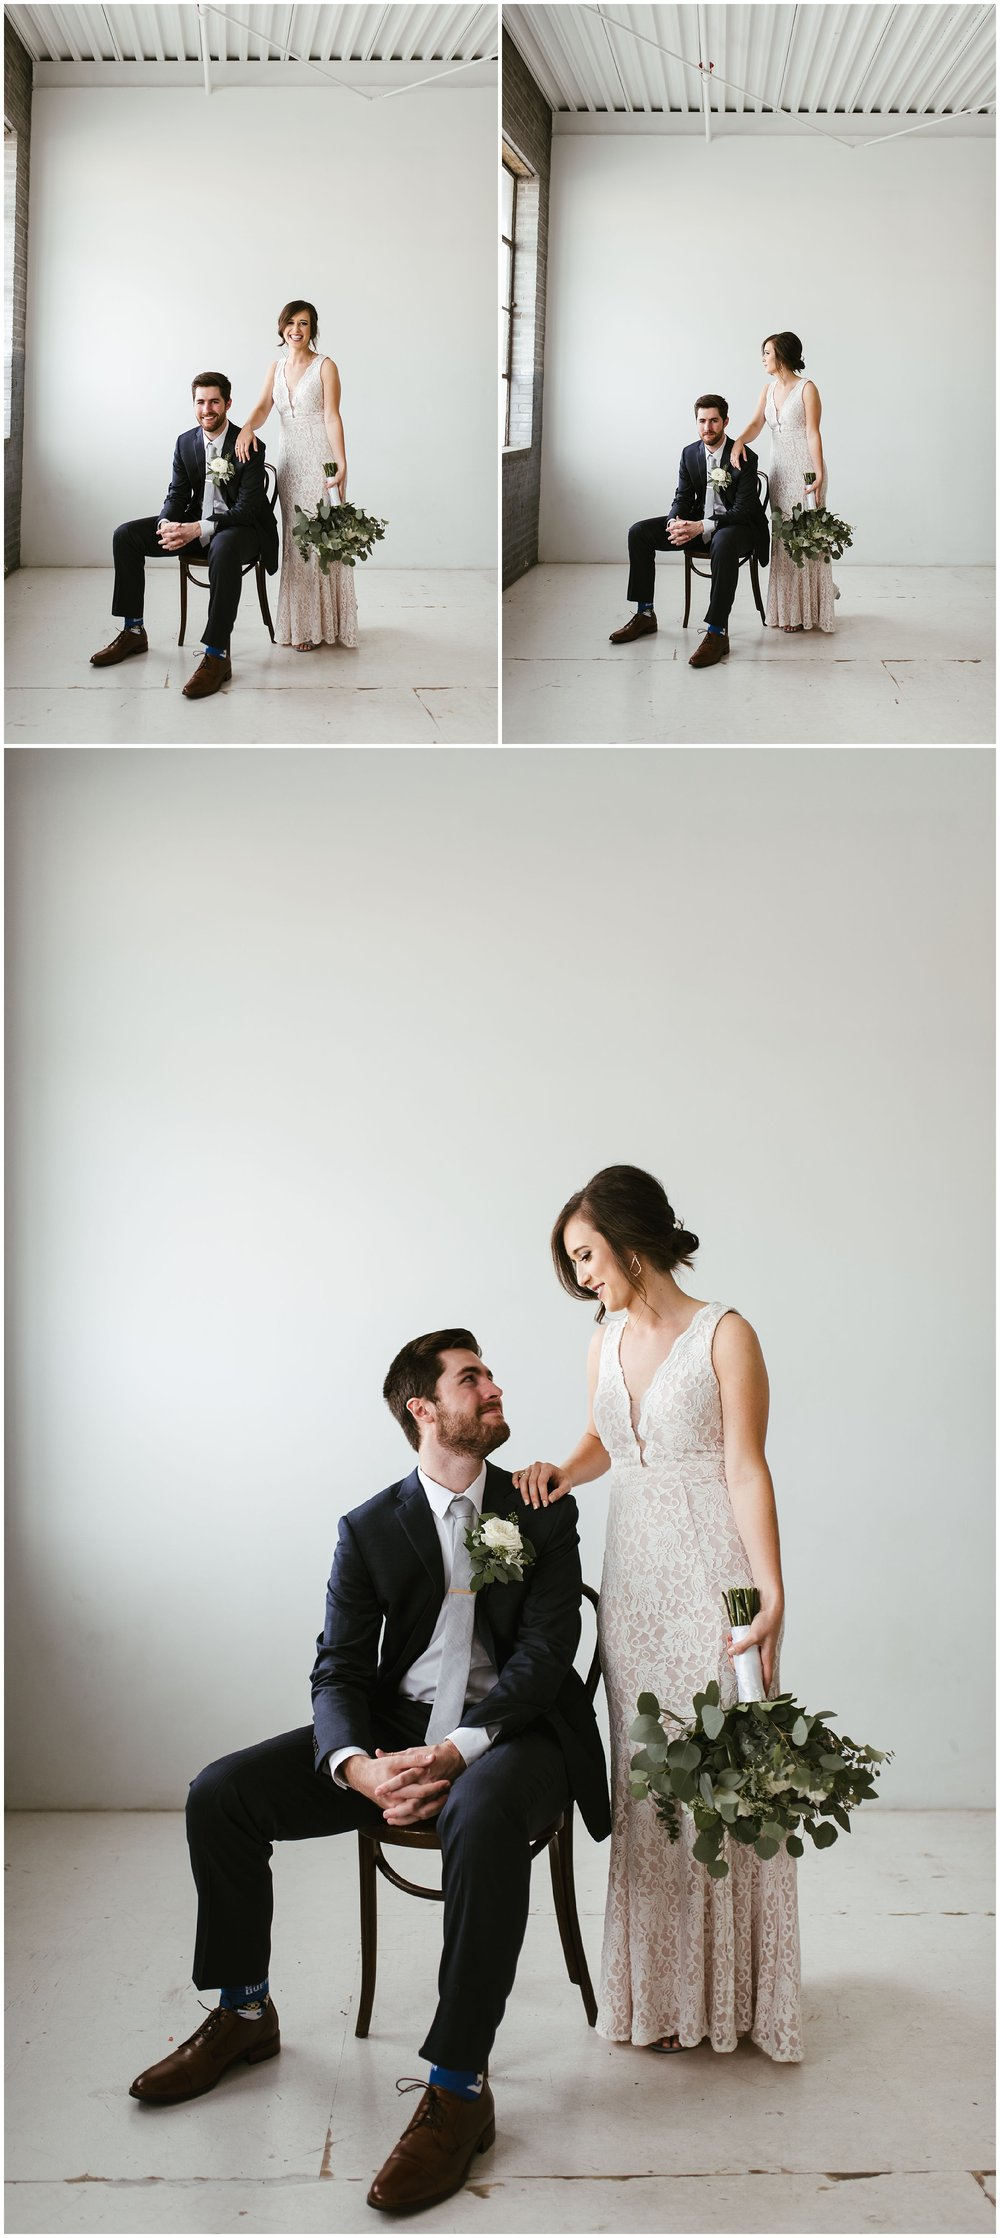 The Houston Event Venue Wedding | Fort Worth Wedding Photographer | Fort Worth Photographer | www.jordanmitchellphotography.com